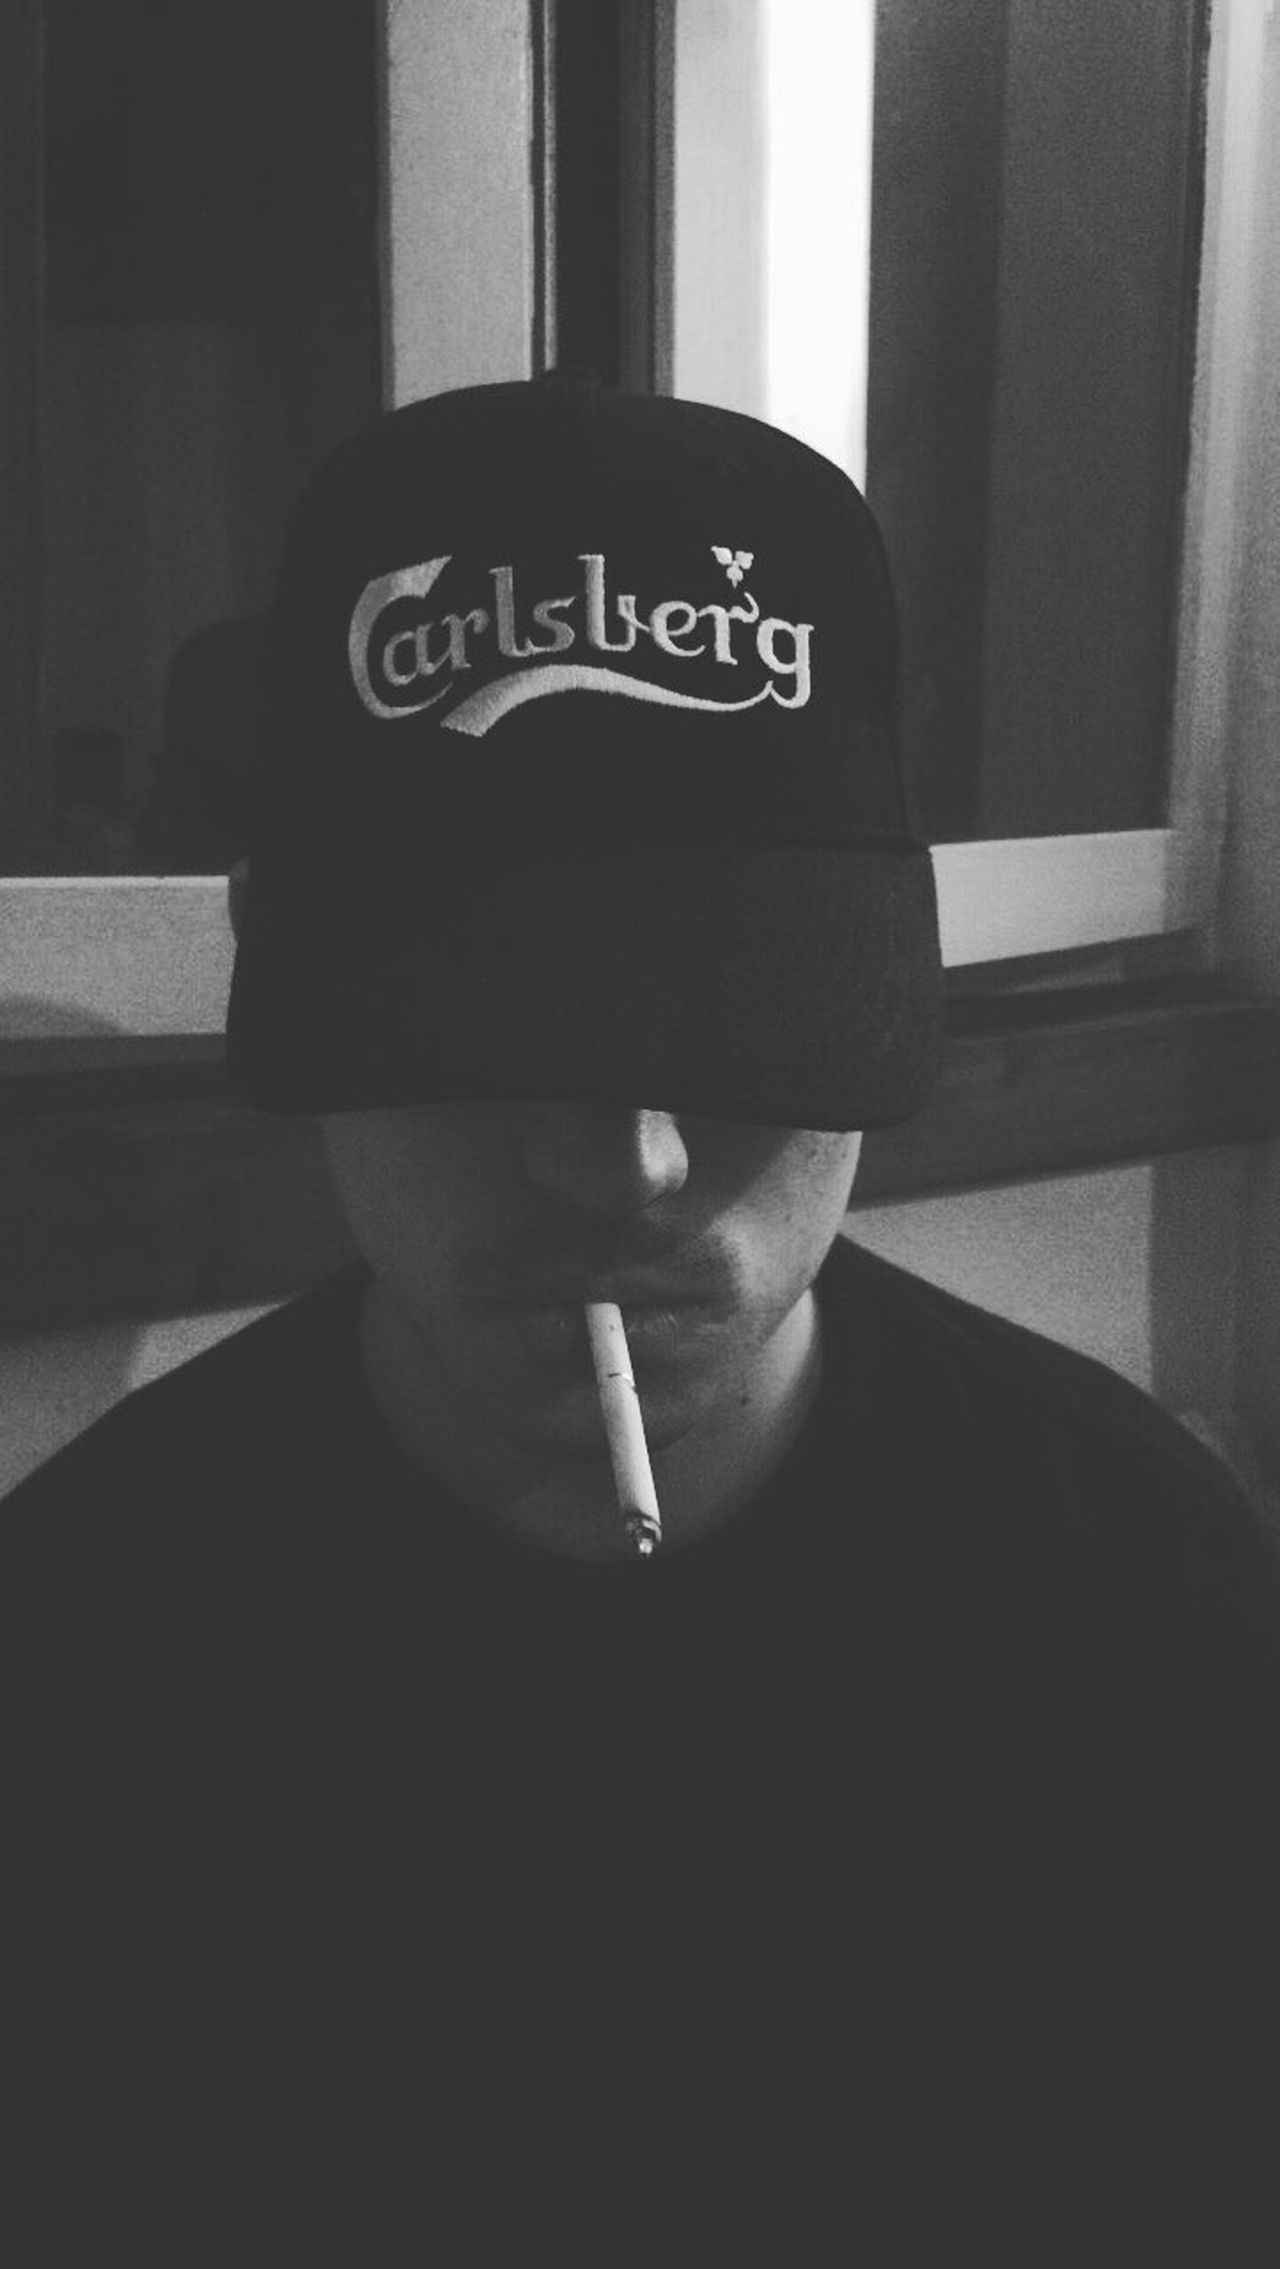 Selfie | One Person Sunlight Real People Indoors  Human Hand Day Close-up Human Body Part Cowboy Hat People Adult Myself Carlsberg Smoking Drink